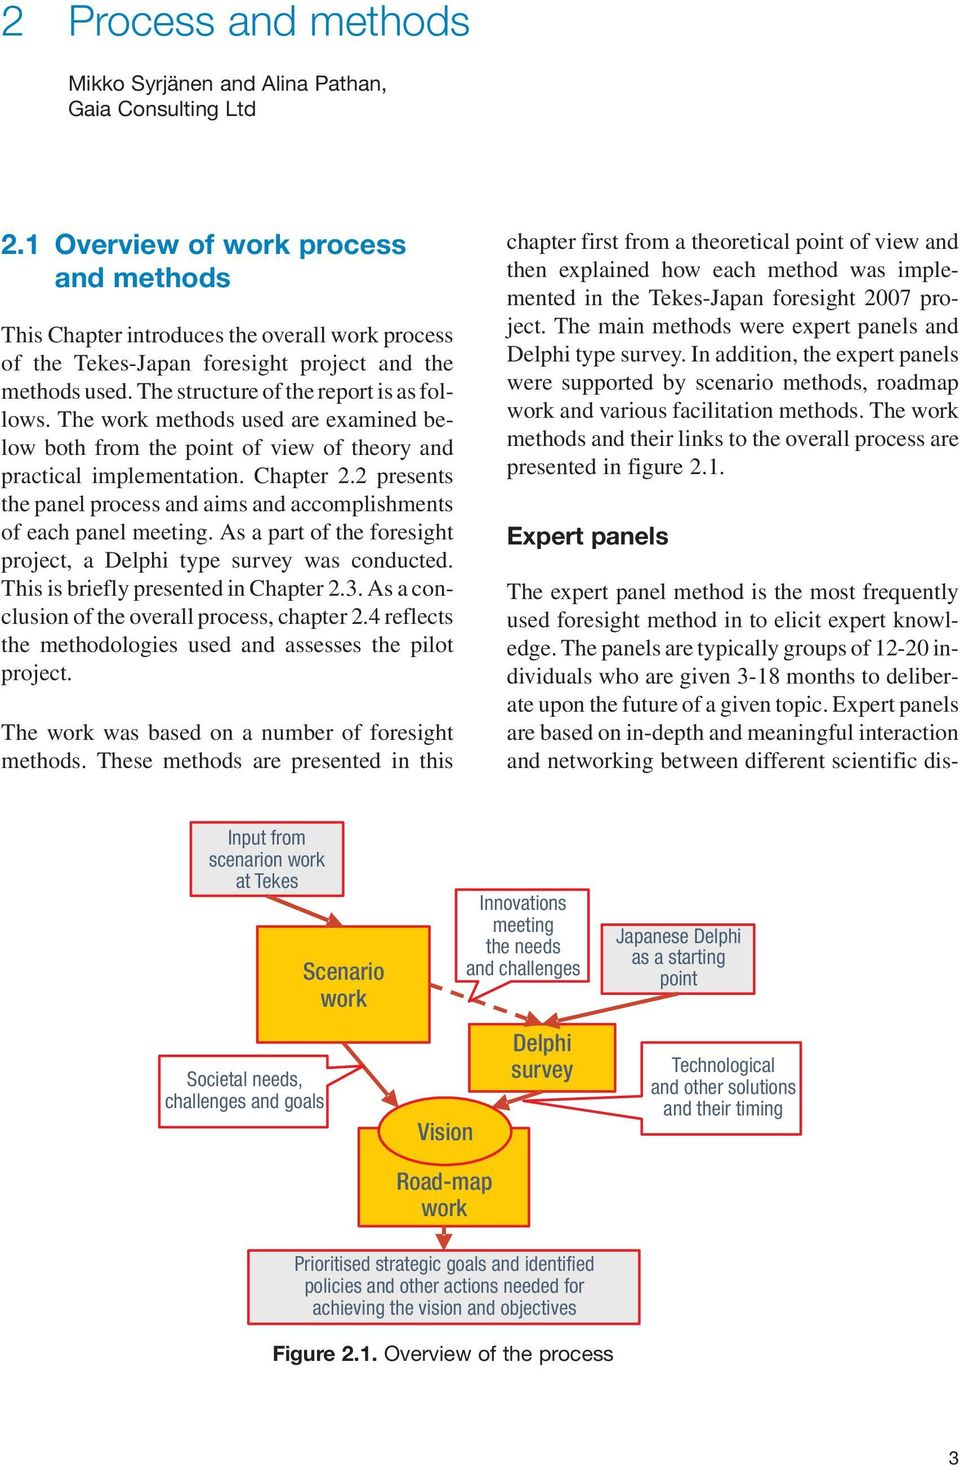 The work methods used are examined below both from the point of view of theory and practical implementation. Chapter 2.2 presents the panel process and aims and accomplishments of each panel meeting.